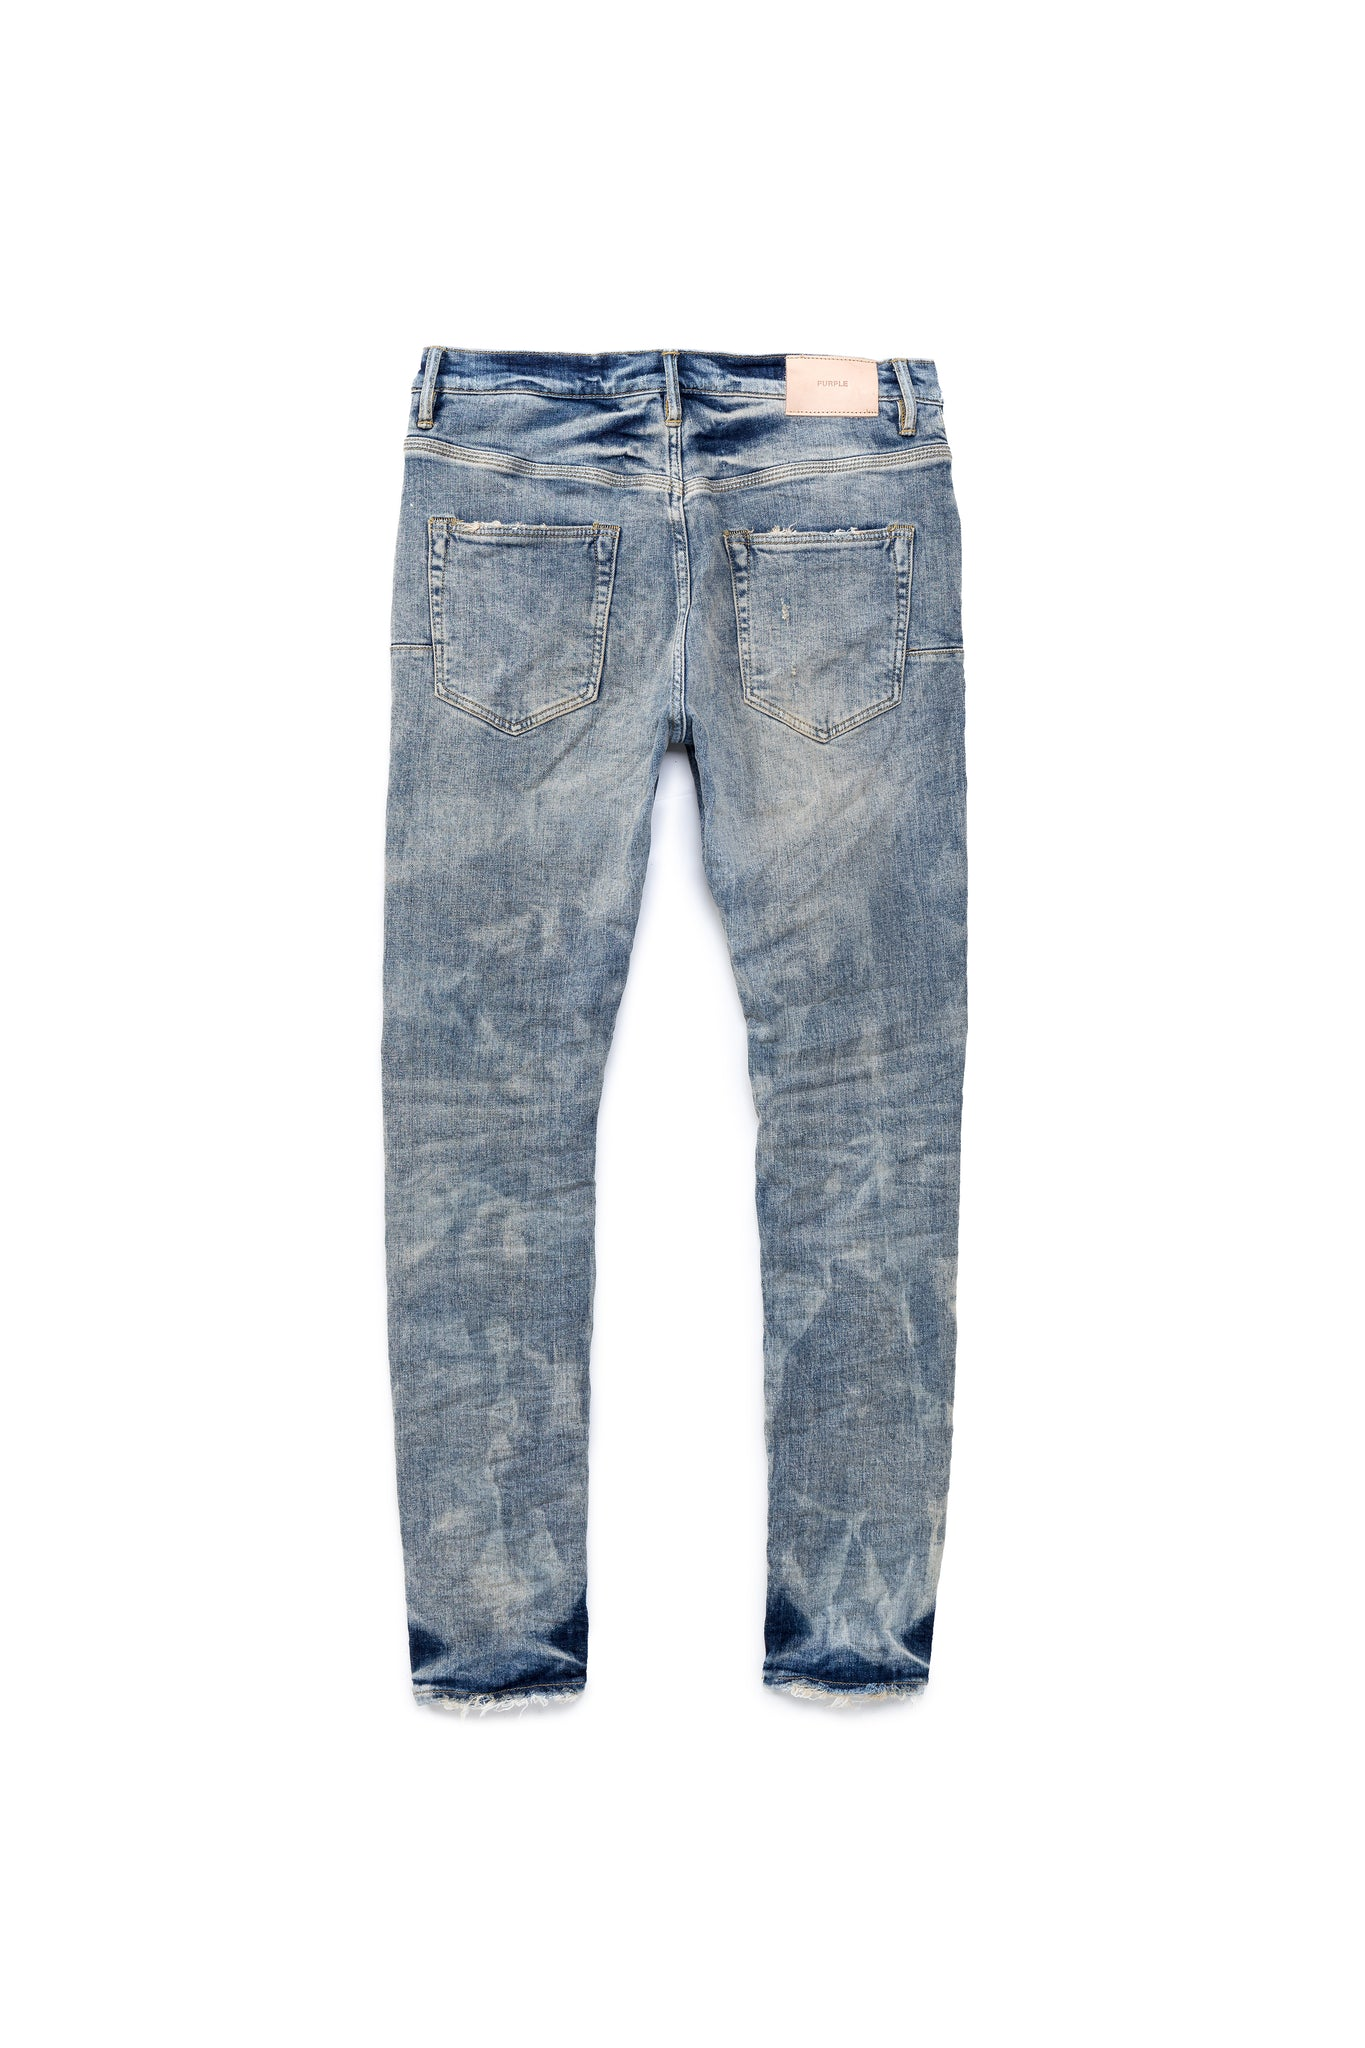 P002 MID RISE WITH TAPERED LEG - Two Year Claw